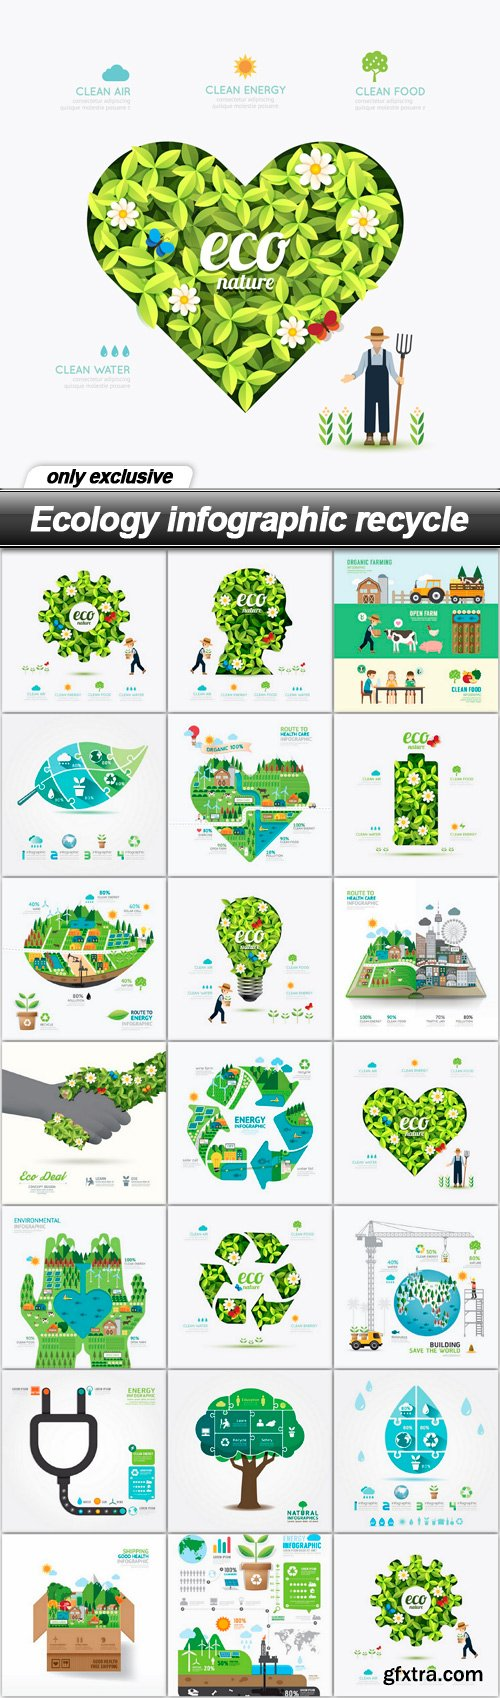 Ecology infographic recycle - 20 EPS